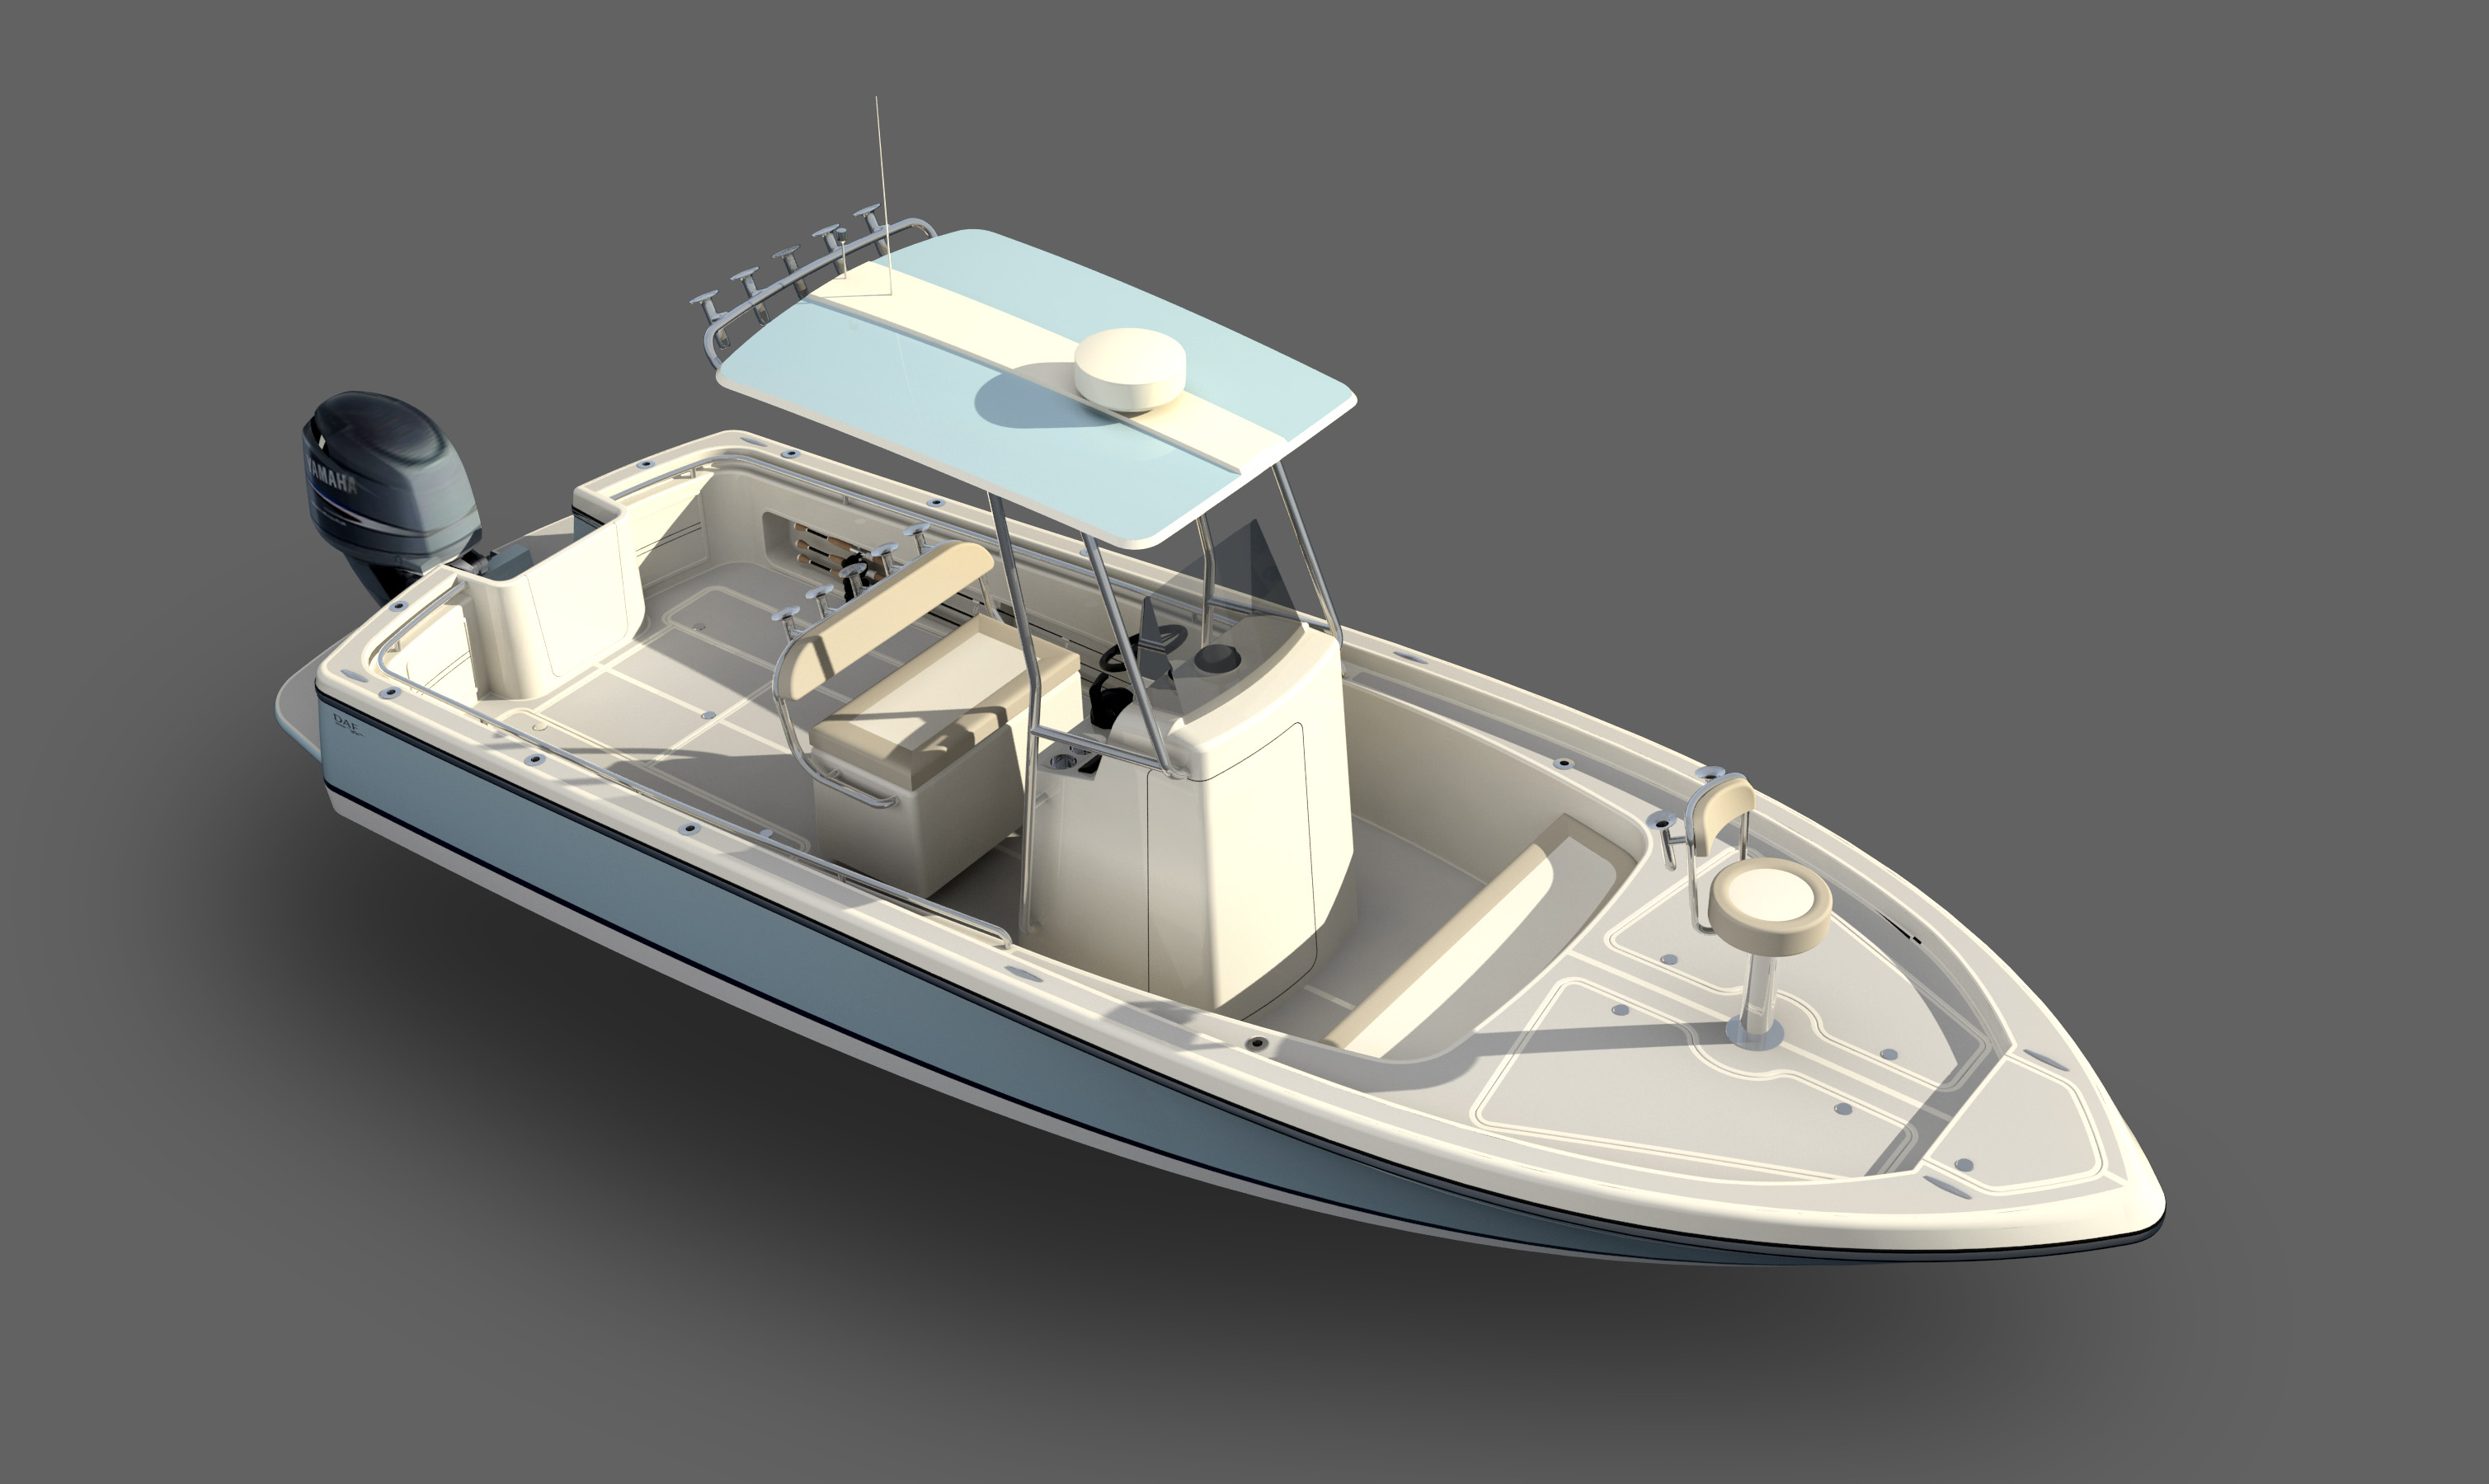 DAF Renderings - Bay Boat